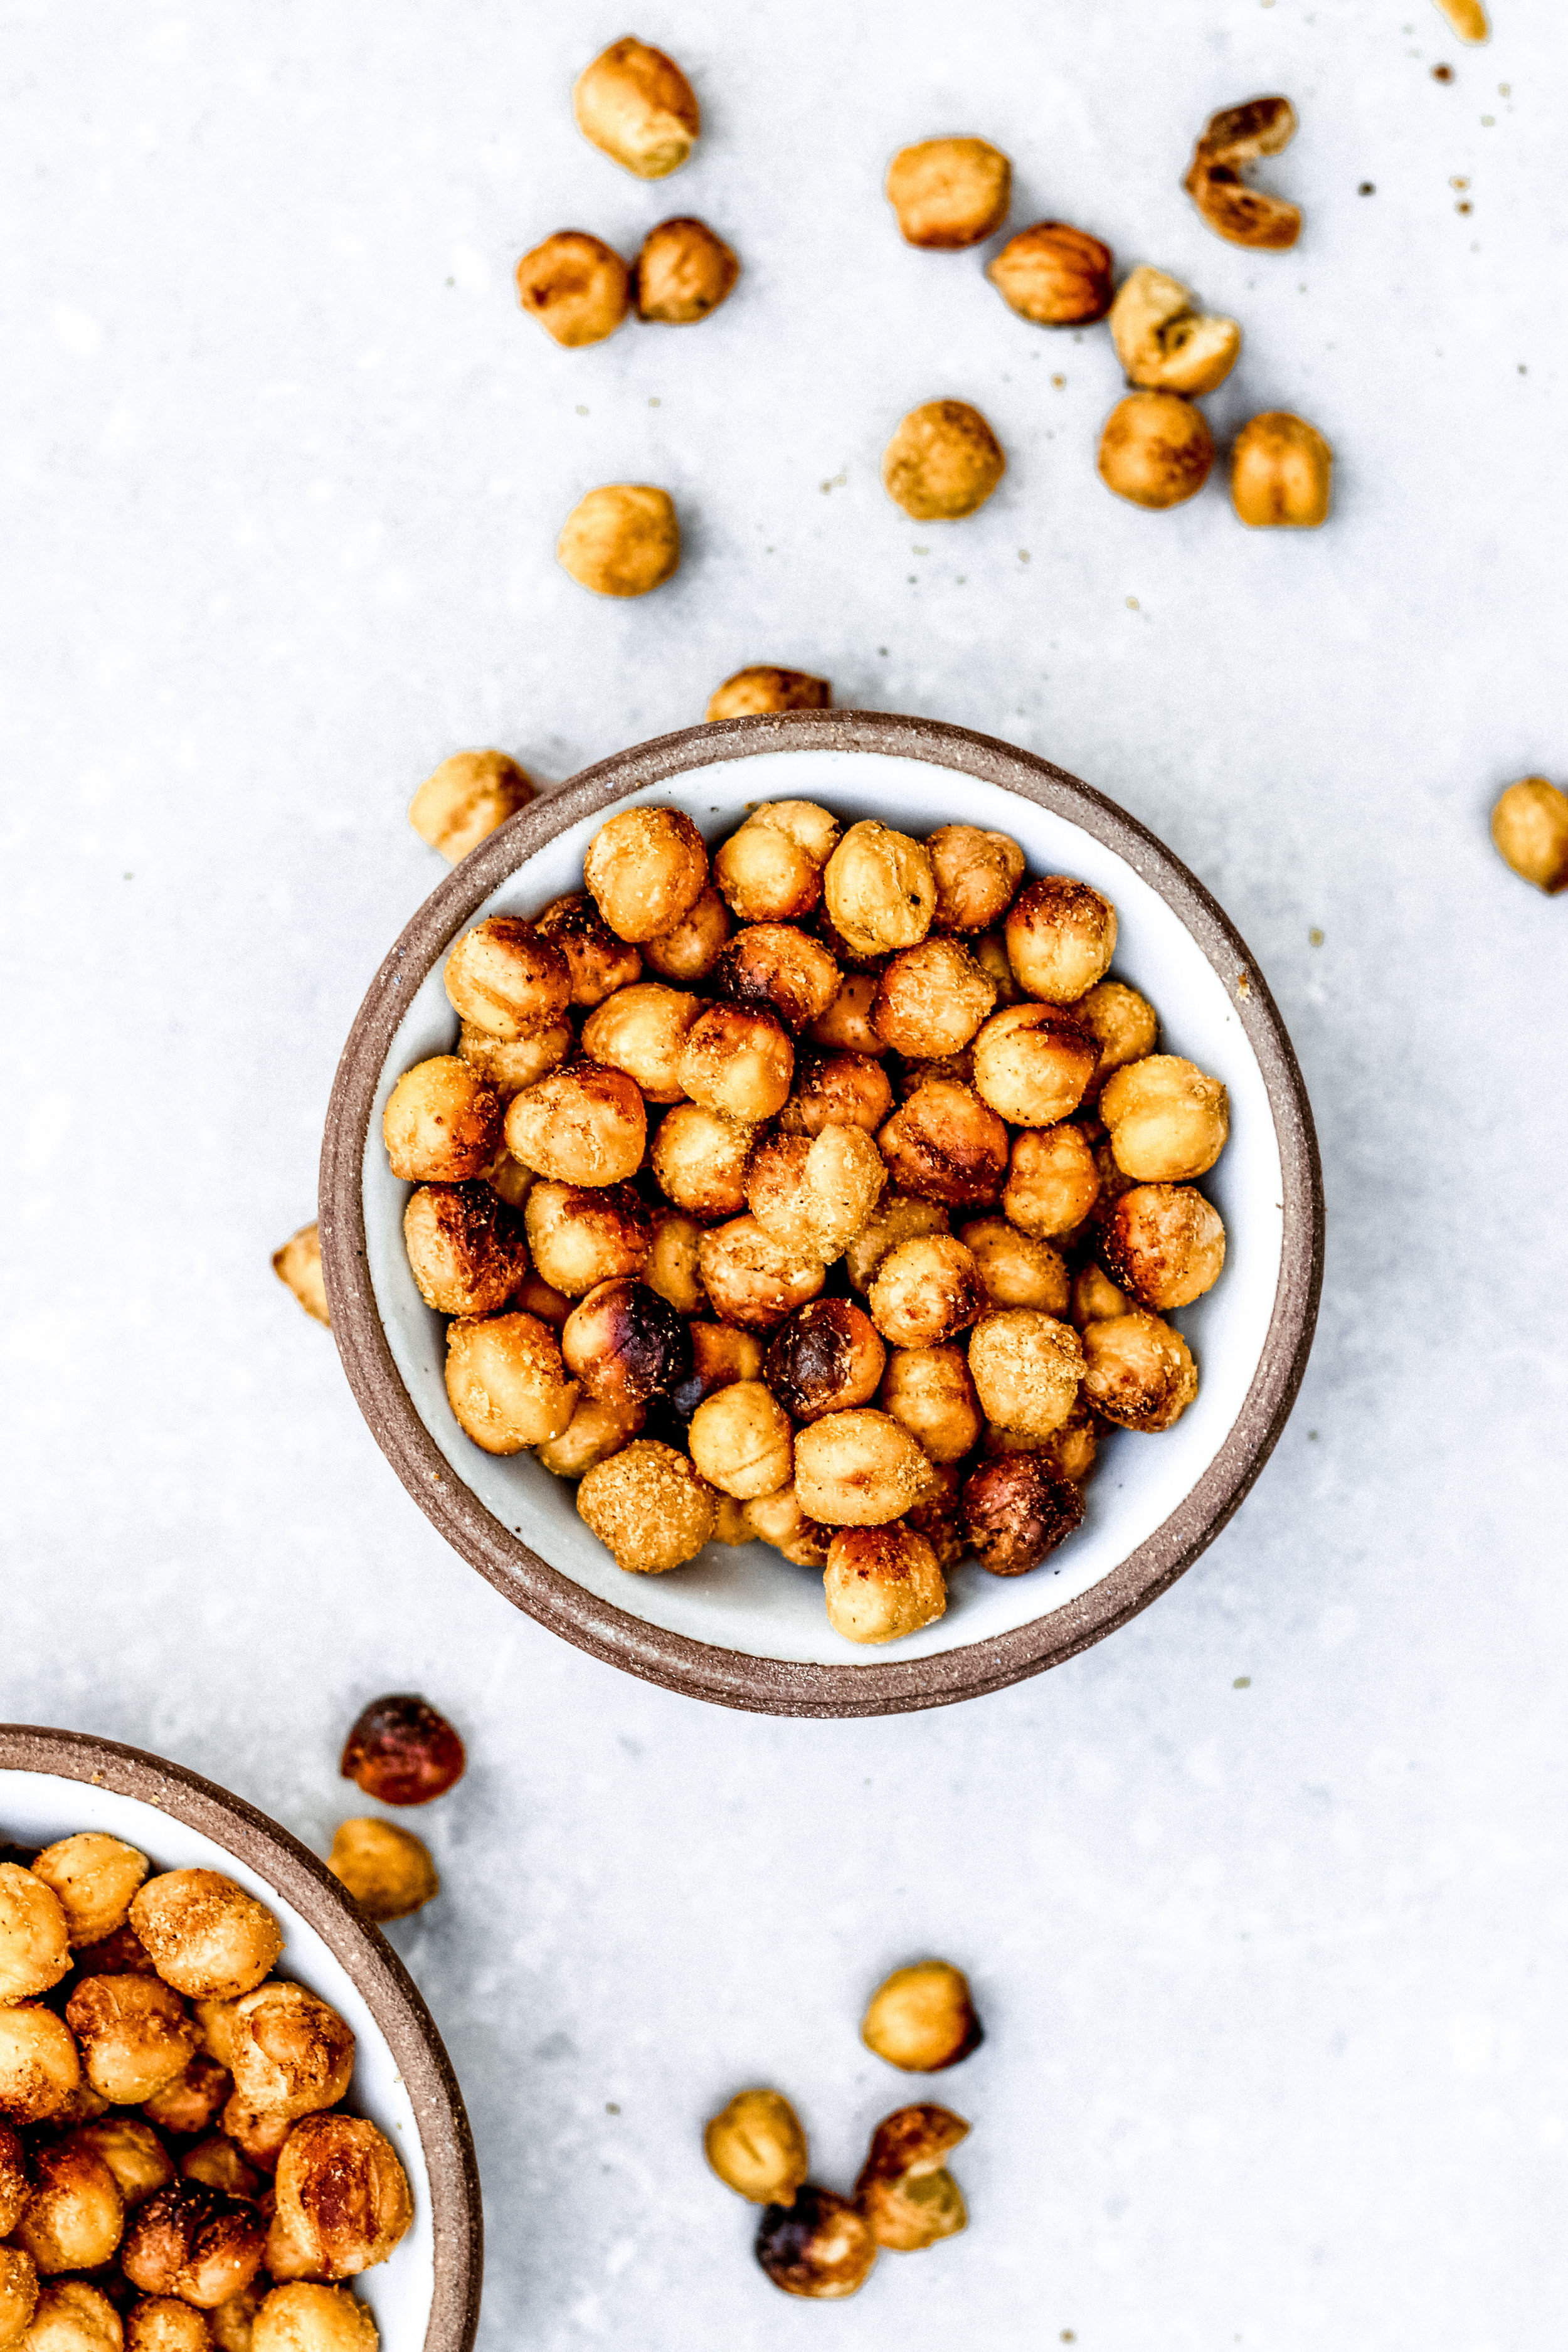 Delicious vegan snack, oven roasted chickpeas that are cheesy as can be but dairy-free all at the same time. Made with six delicious ingredients and packed with protein and healthy fat.